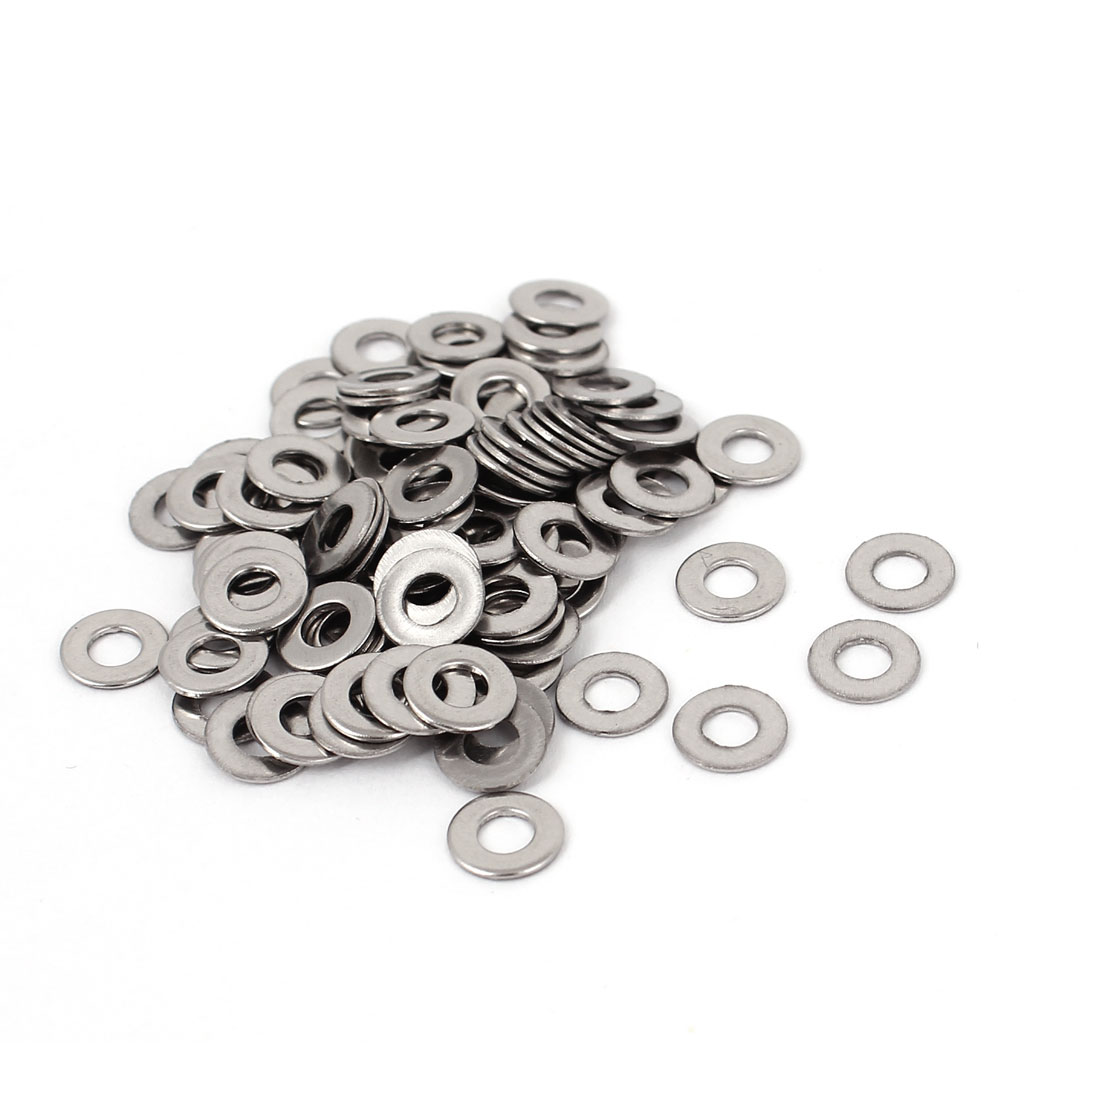 100pcs Silver Tone 304 Stainless Steel Flat Washer #5 for Screws Bolts